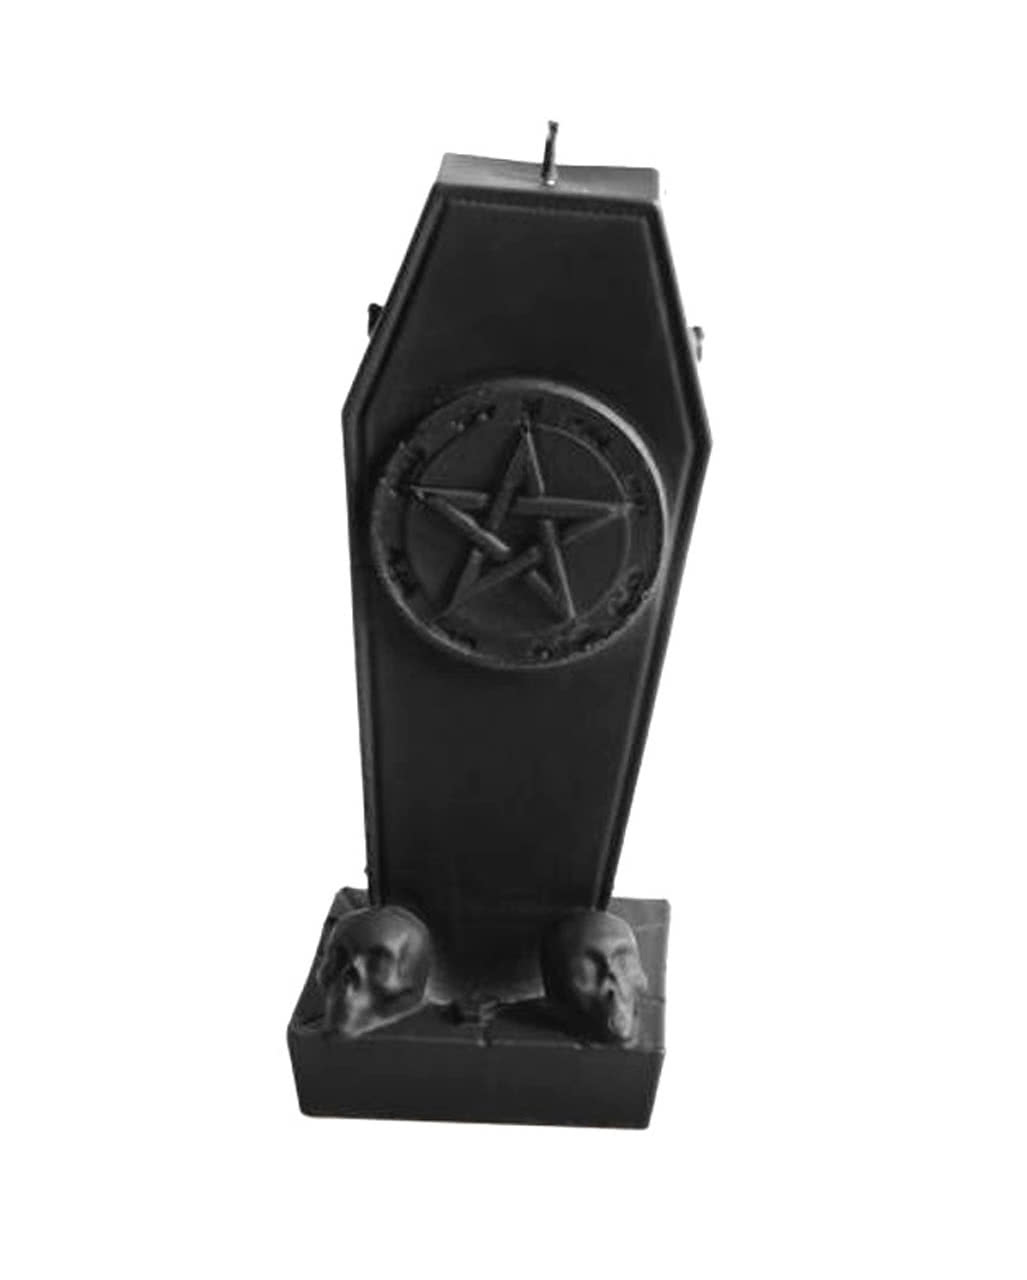 sarg kerze mit pentagramm gothic geschenkartikel horror. Black Bedroom Furniture Sets. Home Design Ideas